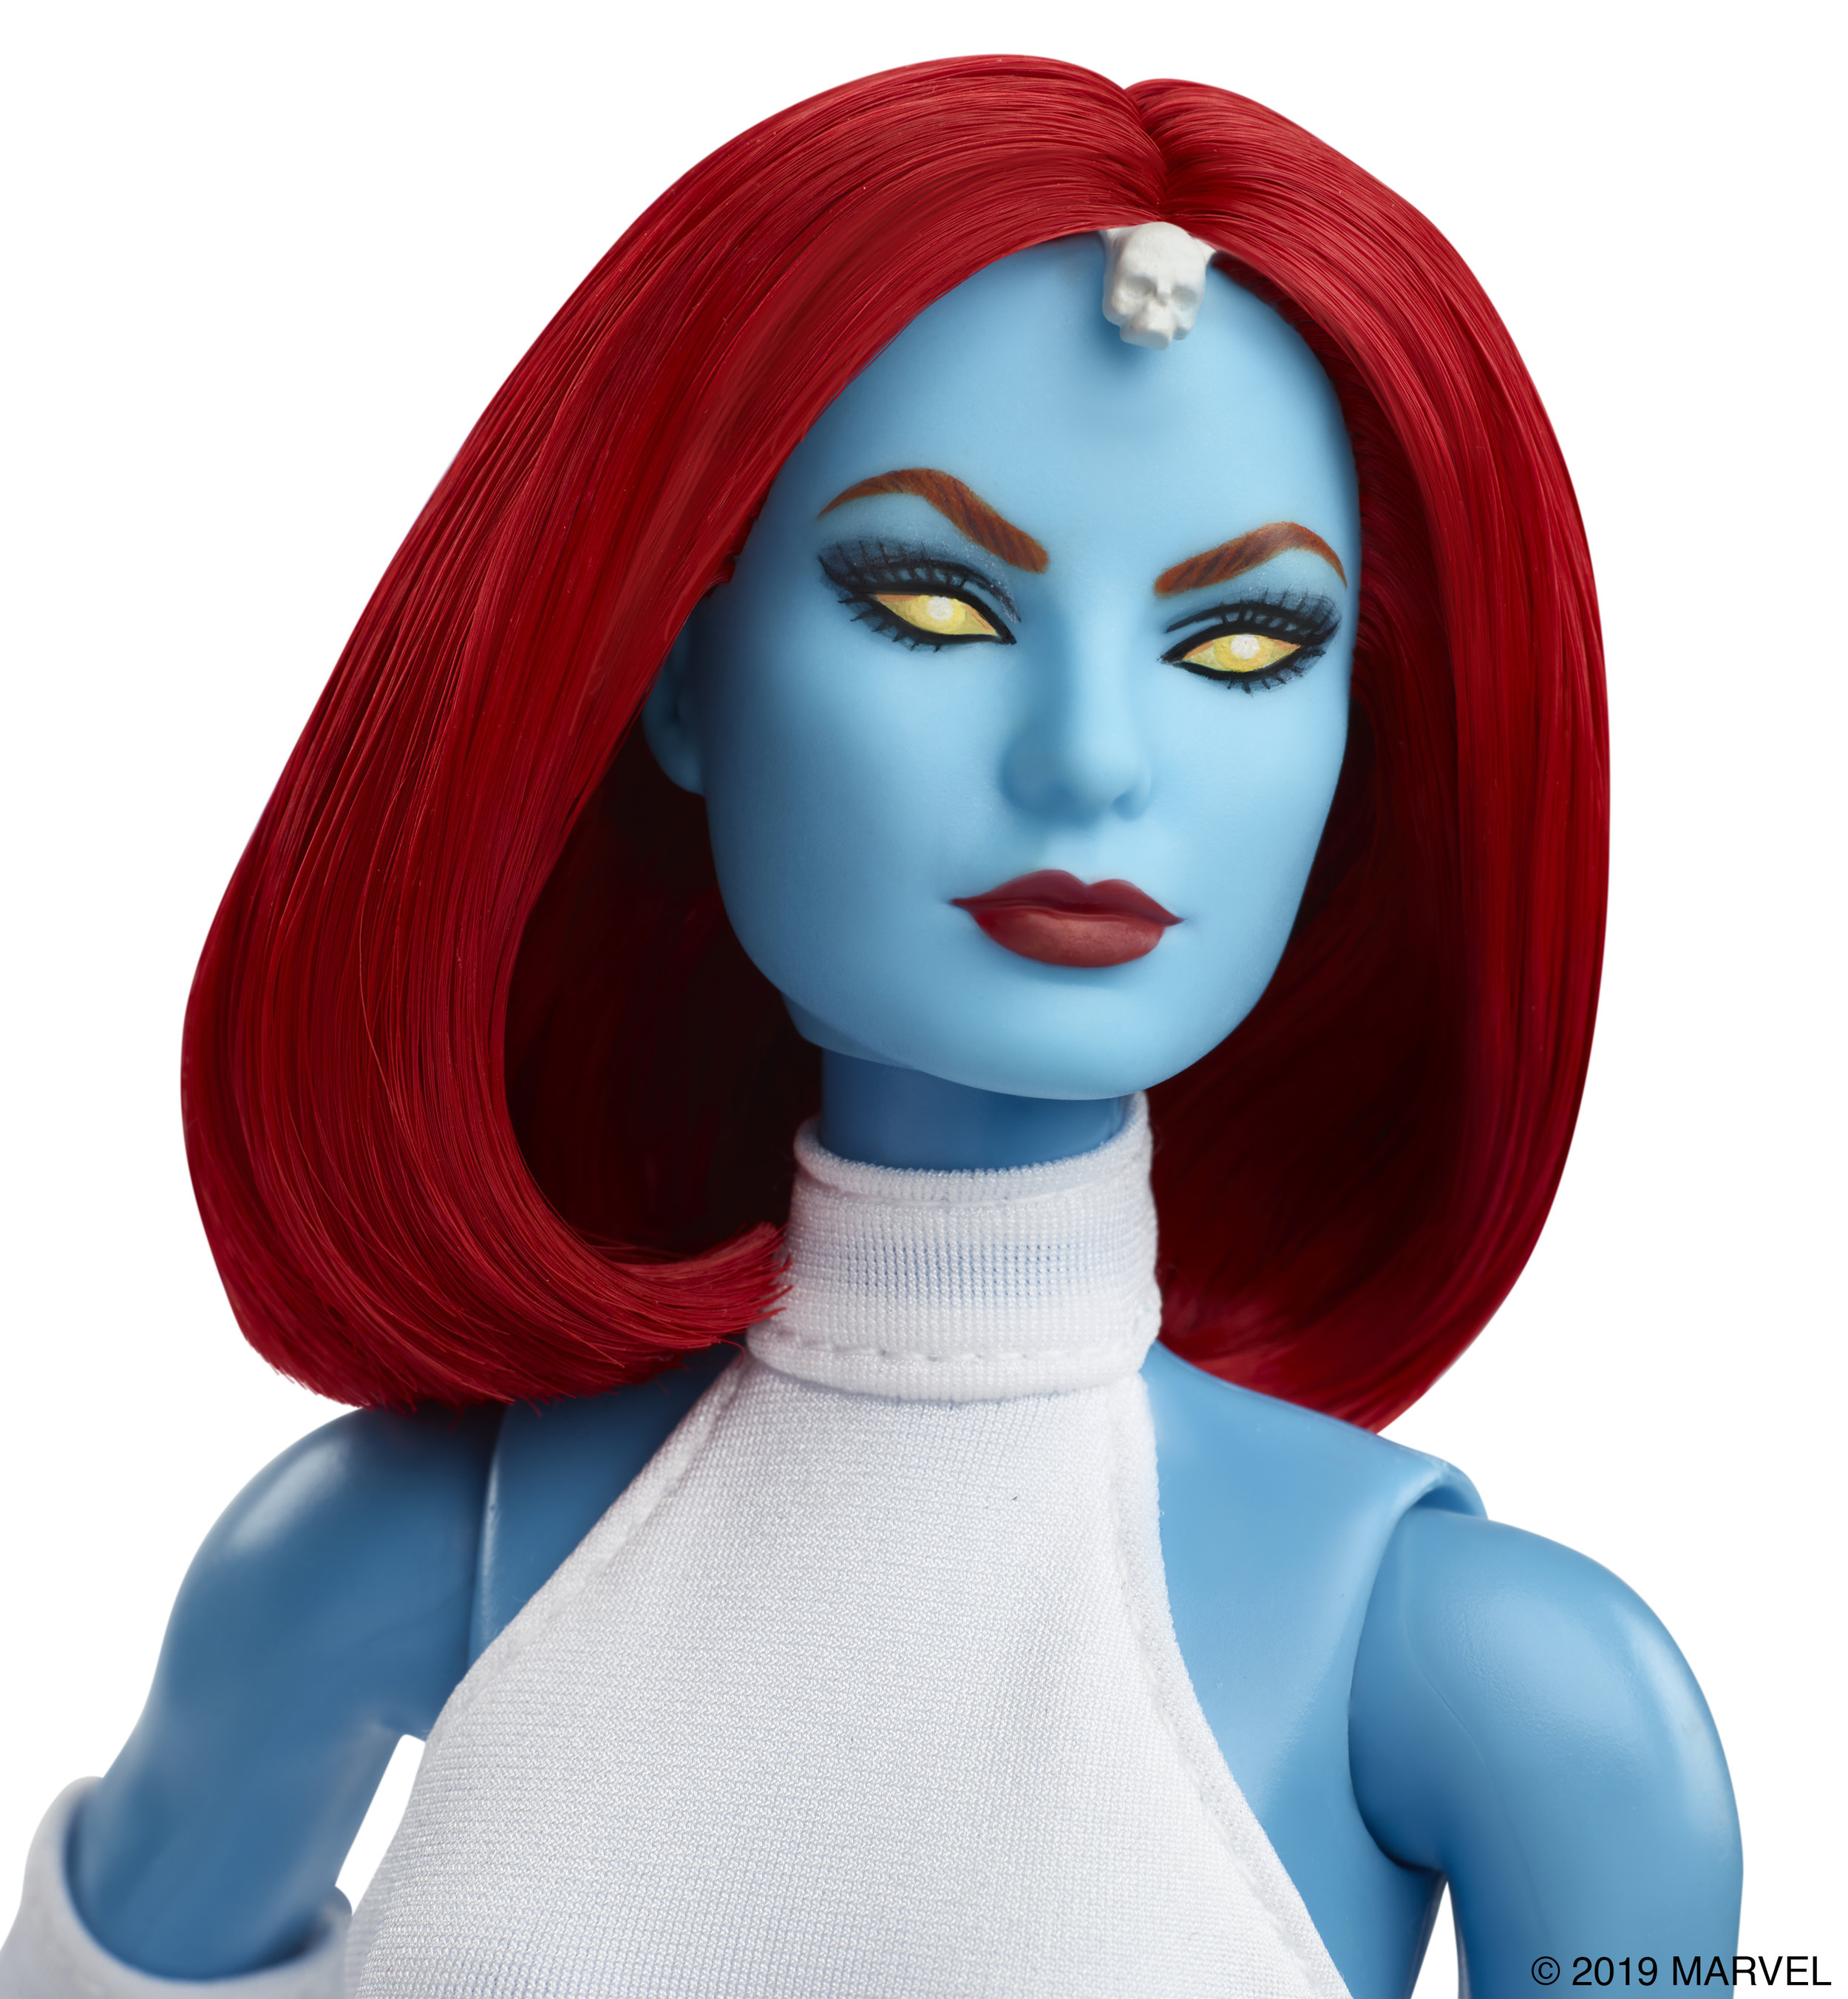 Mystique-mattel-barbie-marvel-19-427-1563414935105.jpg